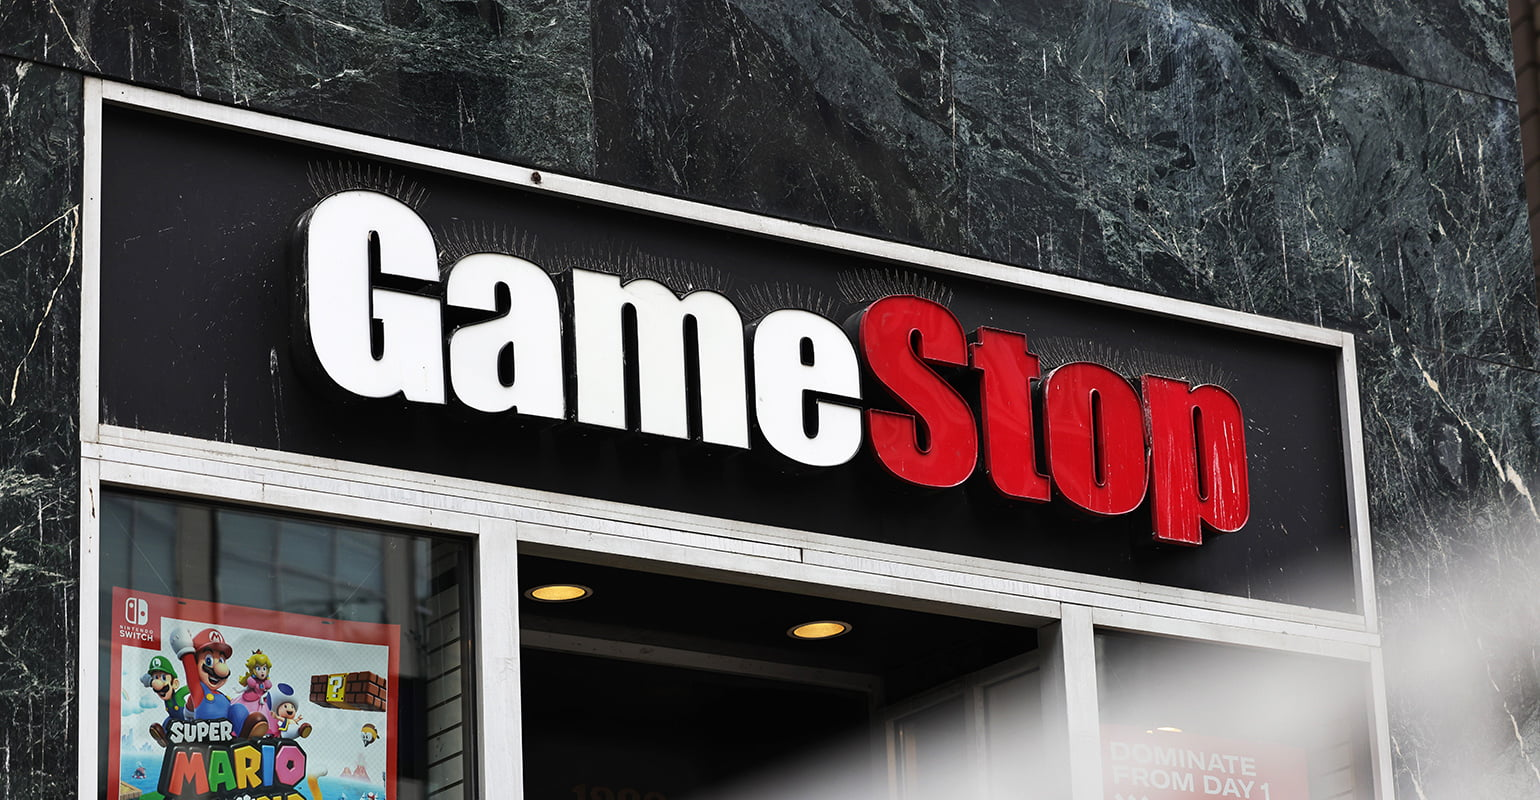 Why Advisors Should Care About GameStop